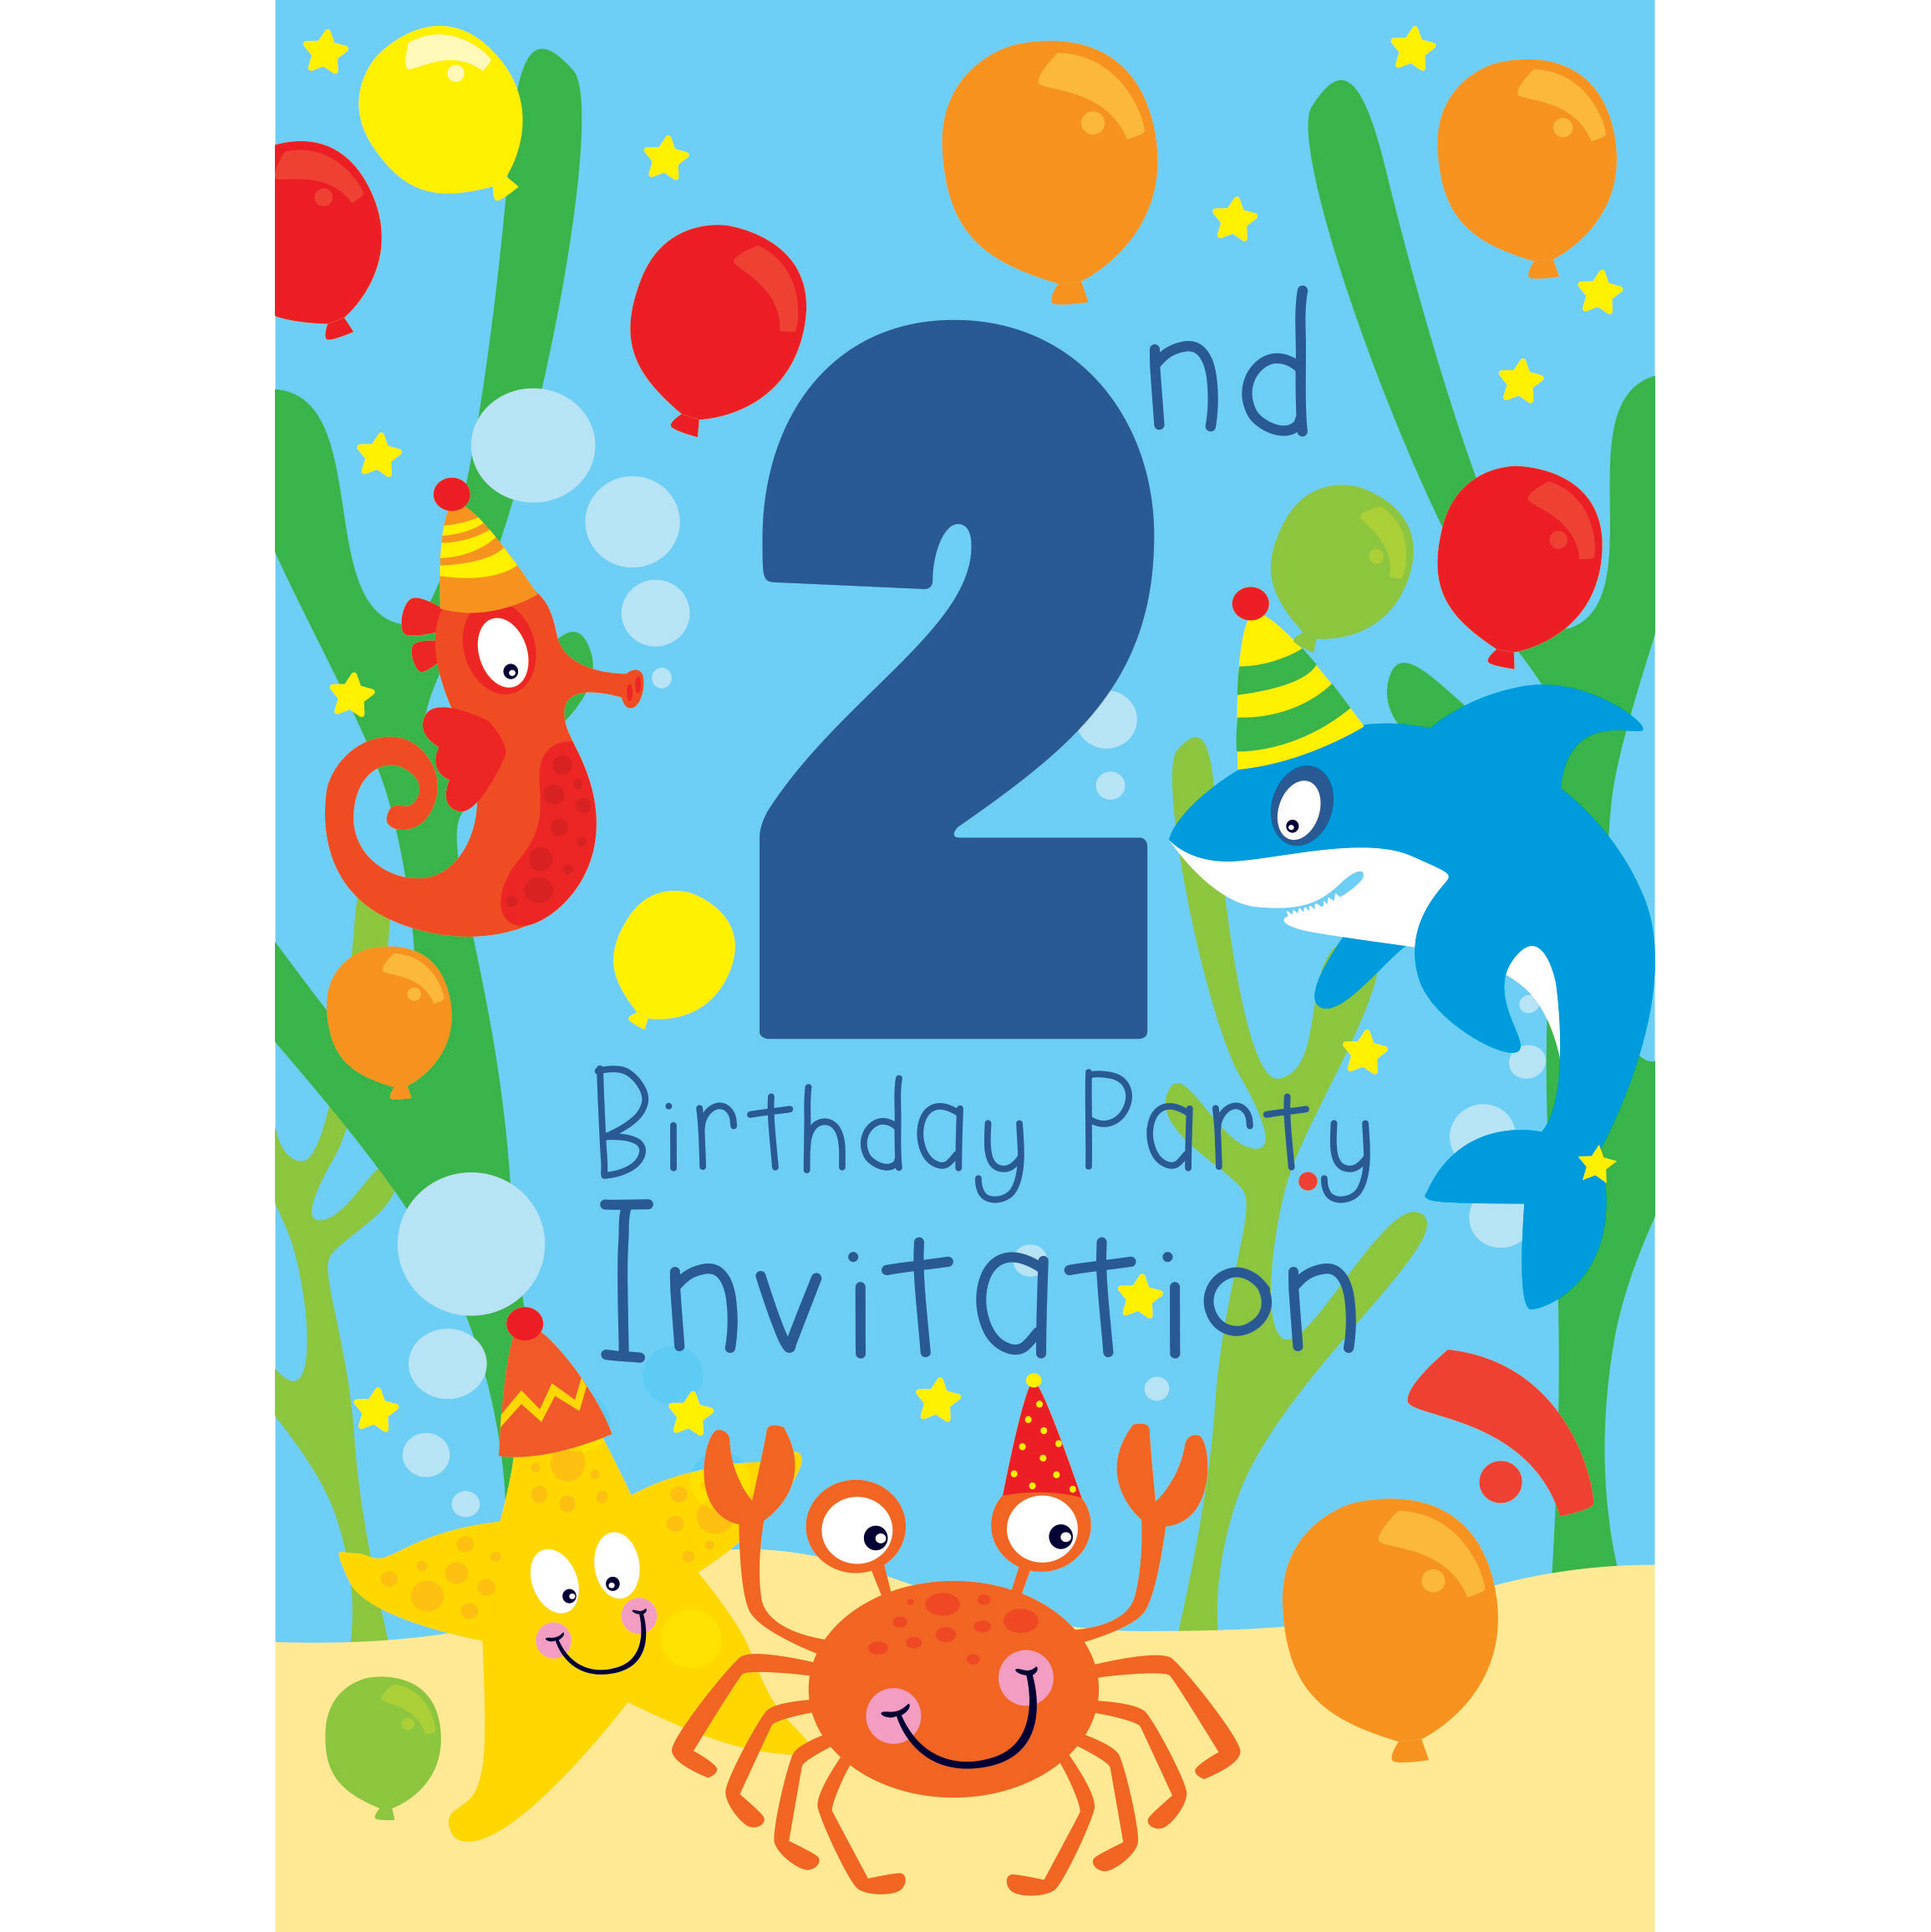 See All Birthday Invitations and Favors; 21st Birthday Invitations and Favors; 30th Birthday Invitations and Favors; 40th Birthday Invitations and Favors.